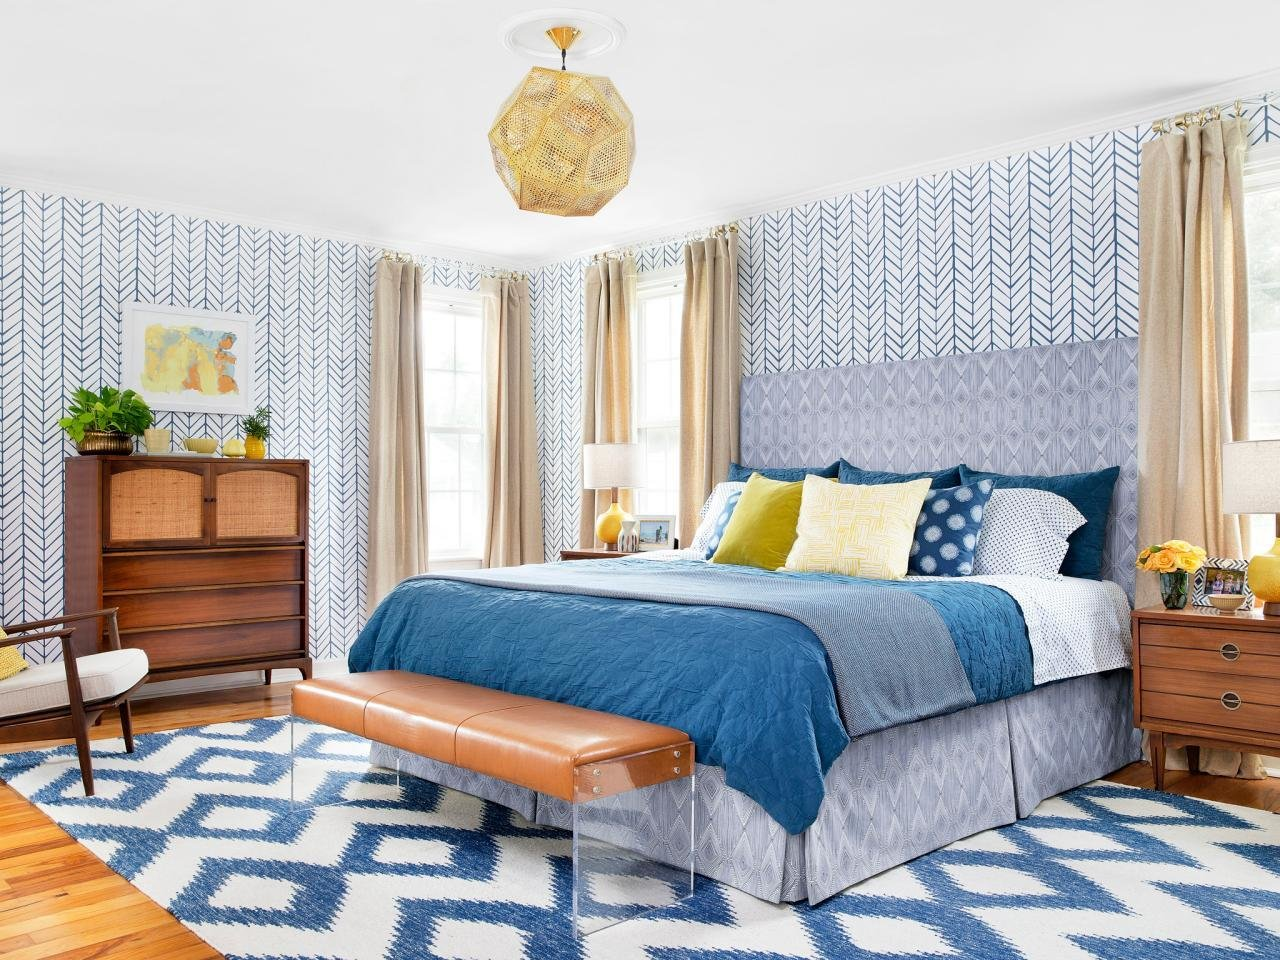 Best From Bland To Bold Before And After Bedroom Makeover Hgtv With Pictures